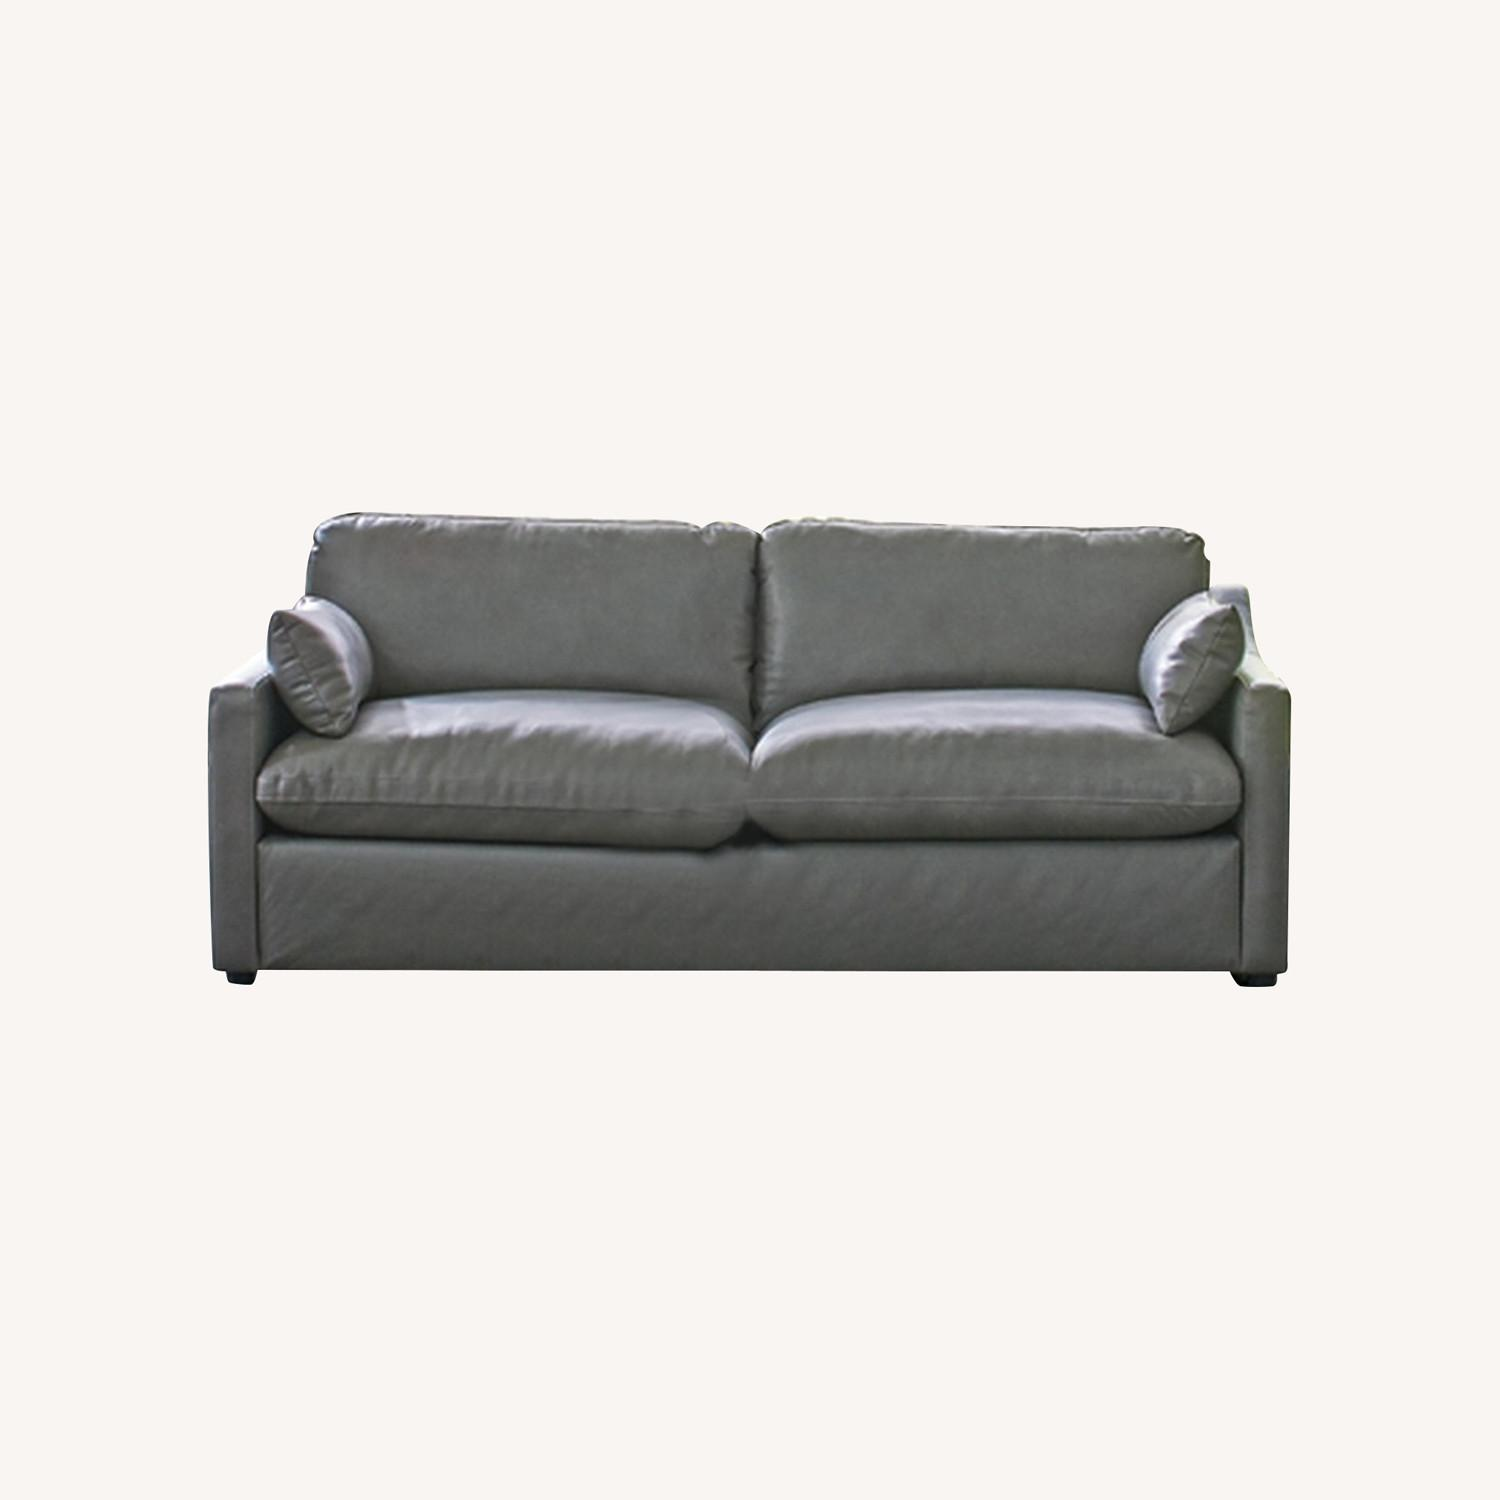 Sofa W/ Pillow-Like Seating In Grey Leather Finish - image-3